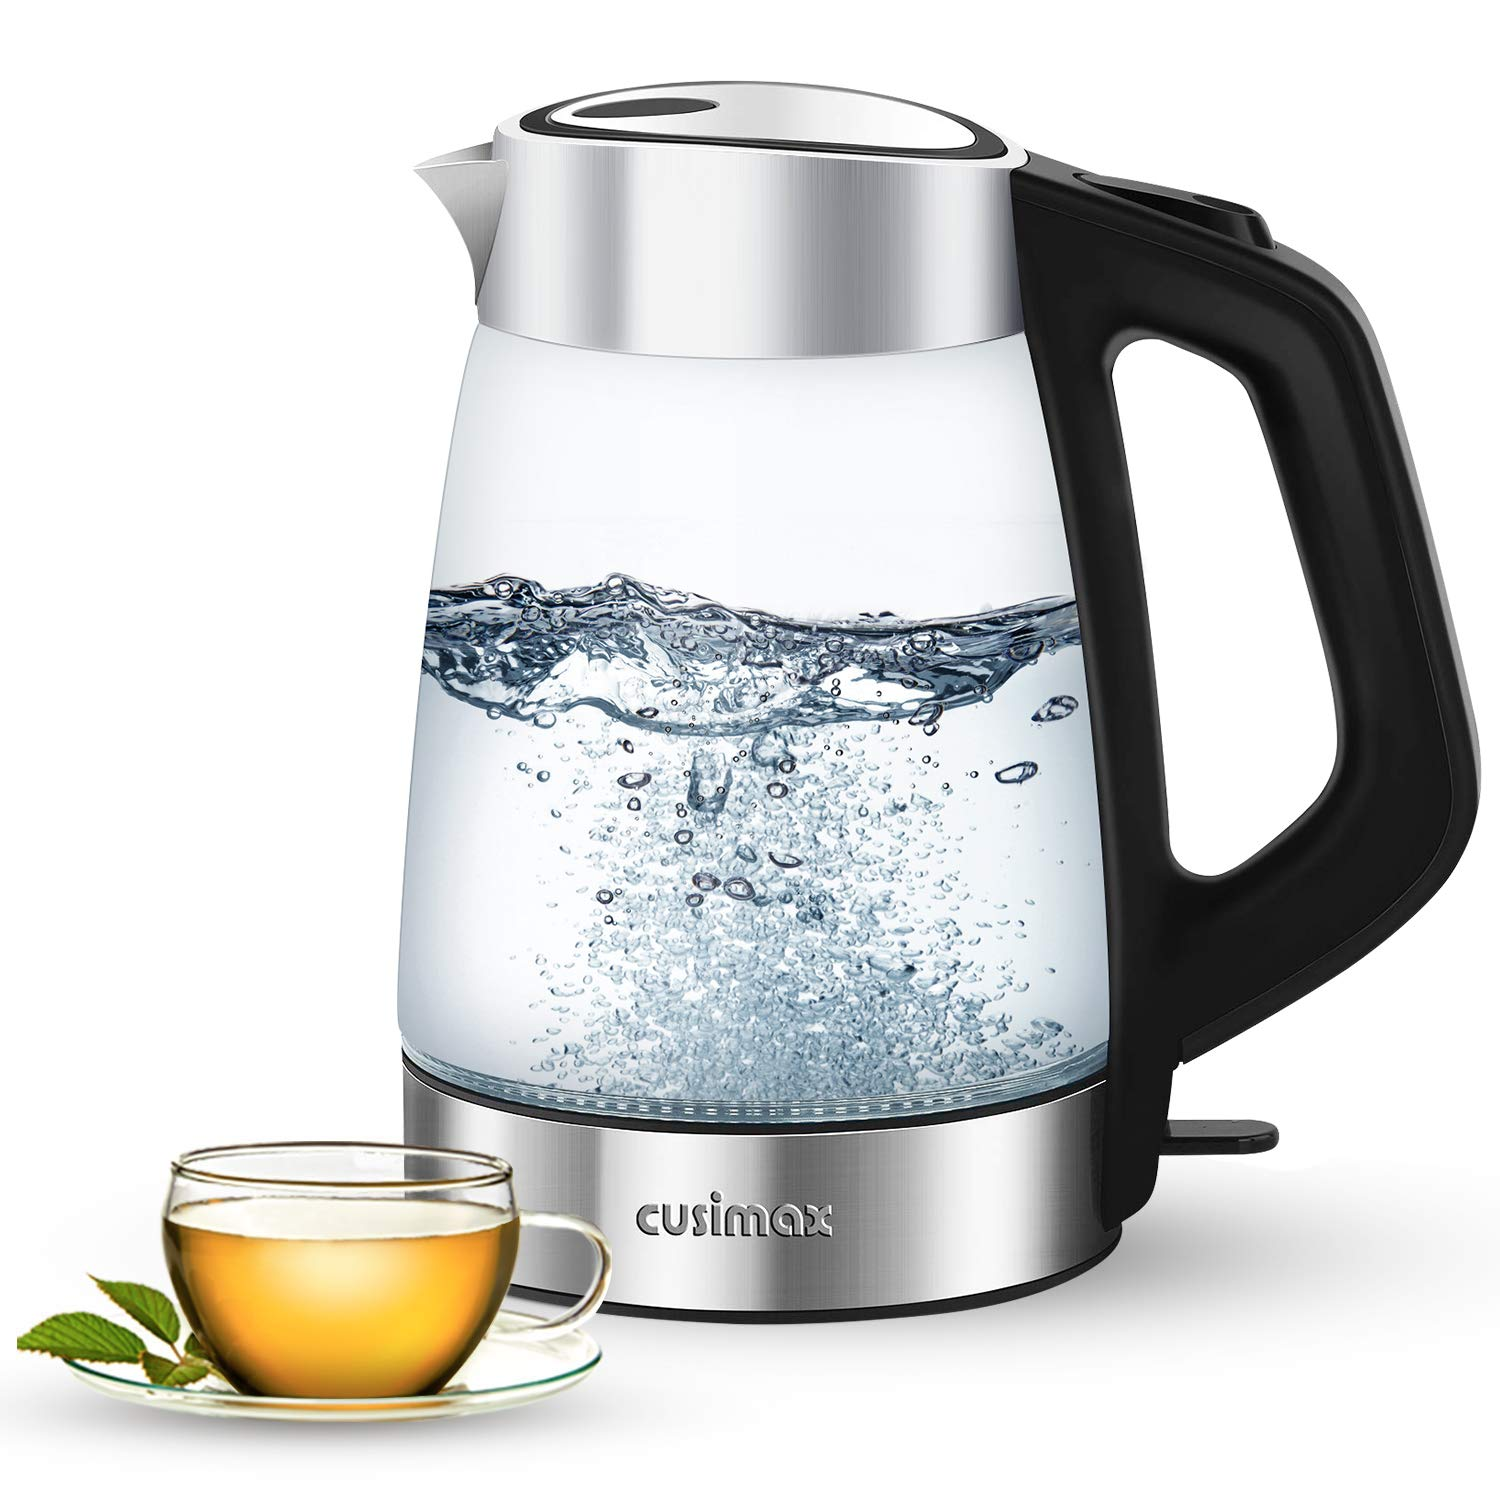 Cusimax 1.7L BPA-free Glass Electric Kettle, Cordless Water Kettle with Auto Shut-off & Boil-dry Protection, Glass Tea Kettle LED Light, CMWK-150G Upgraded Version